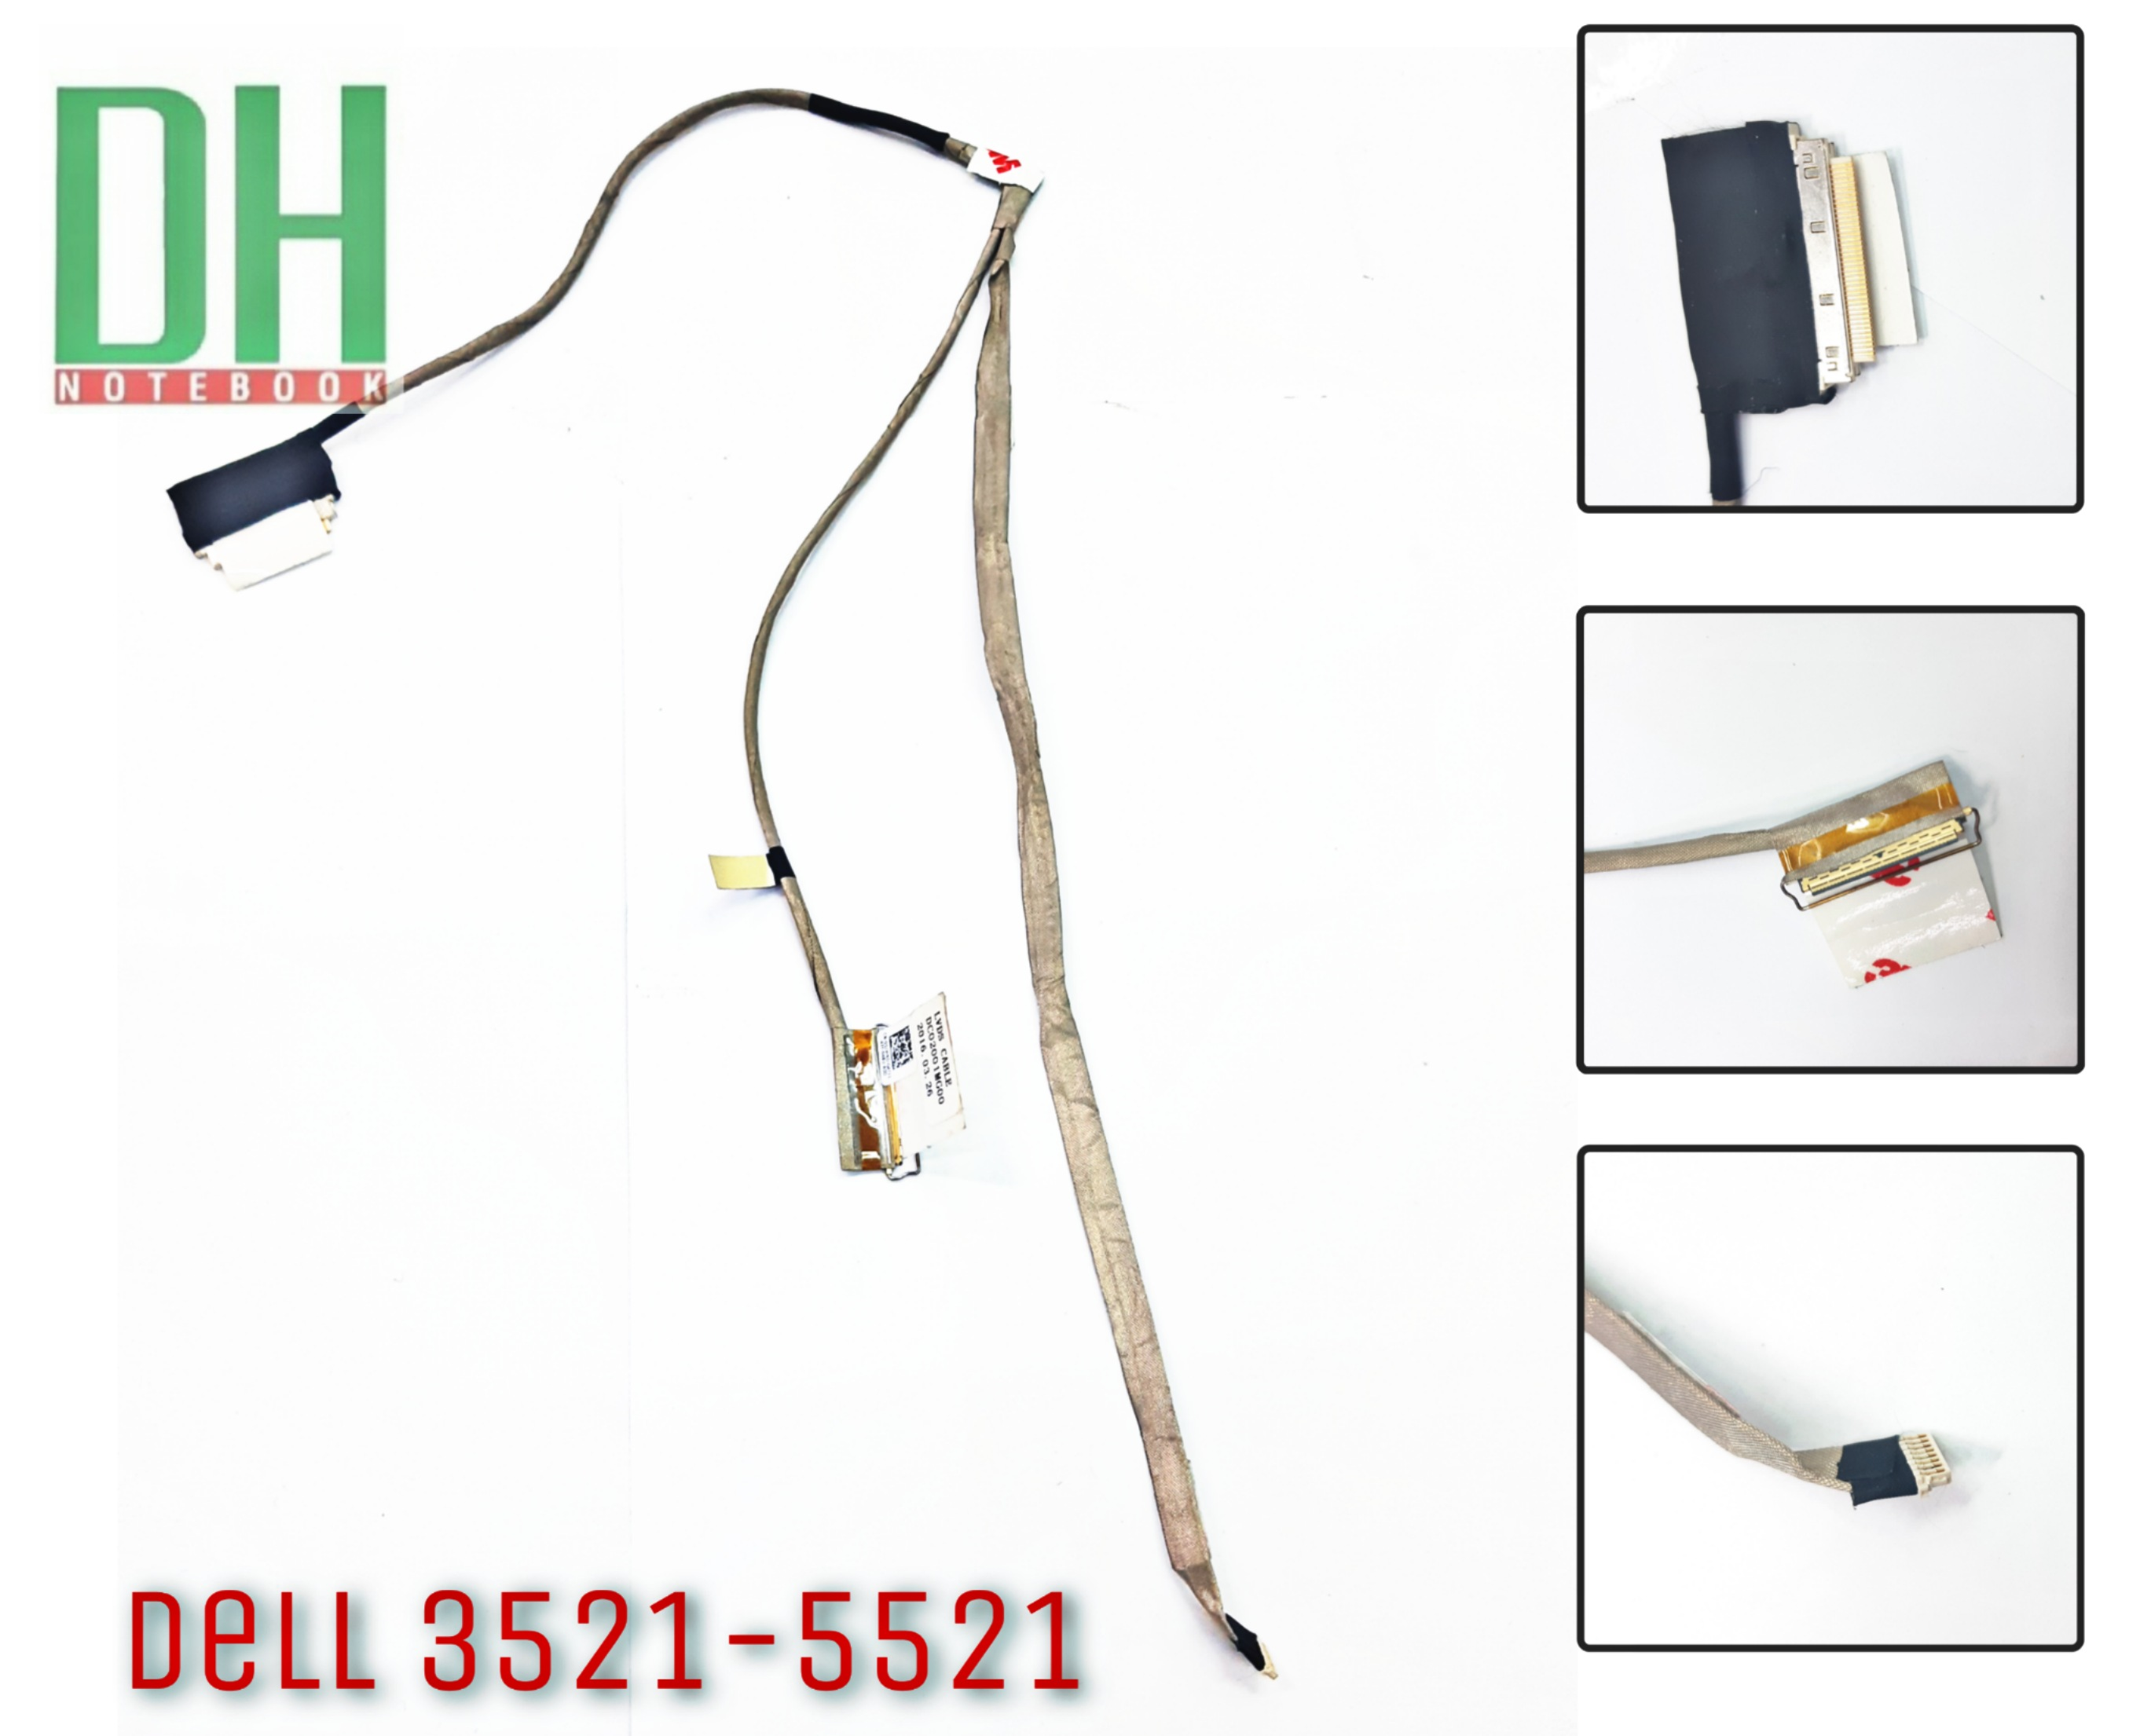 Dell 3521 Video Cable